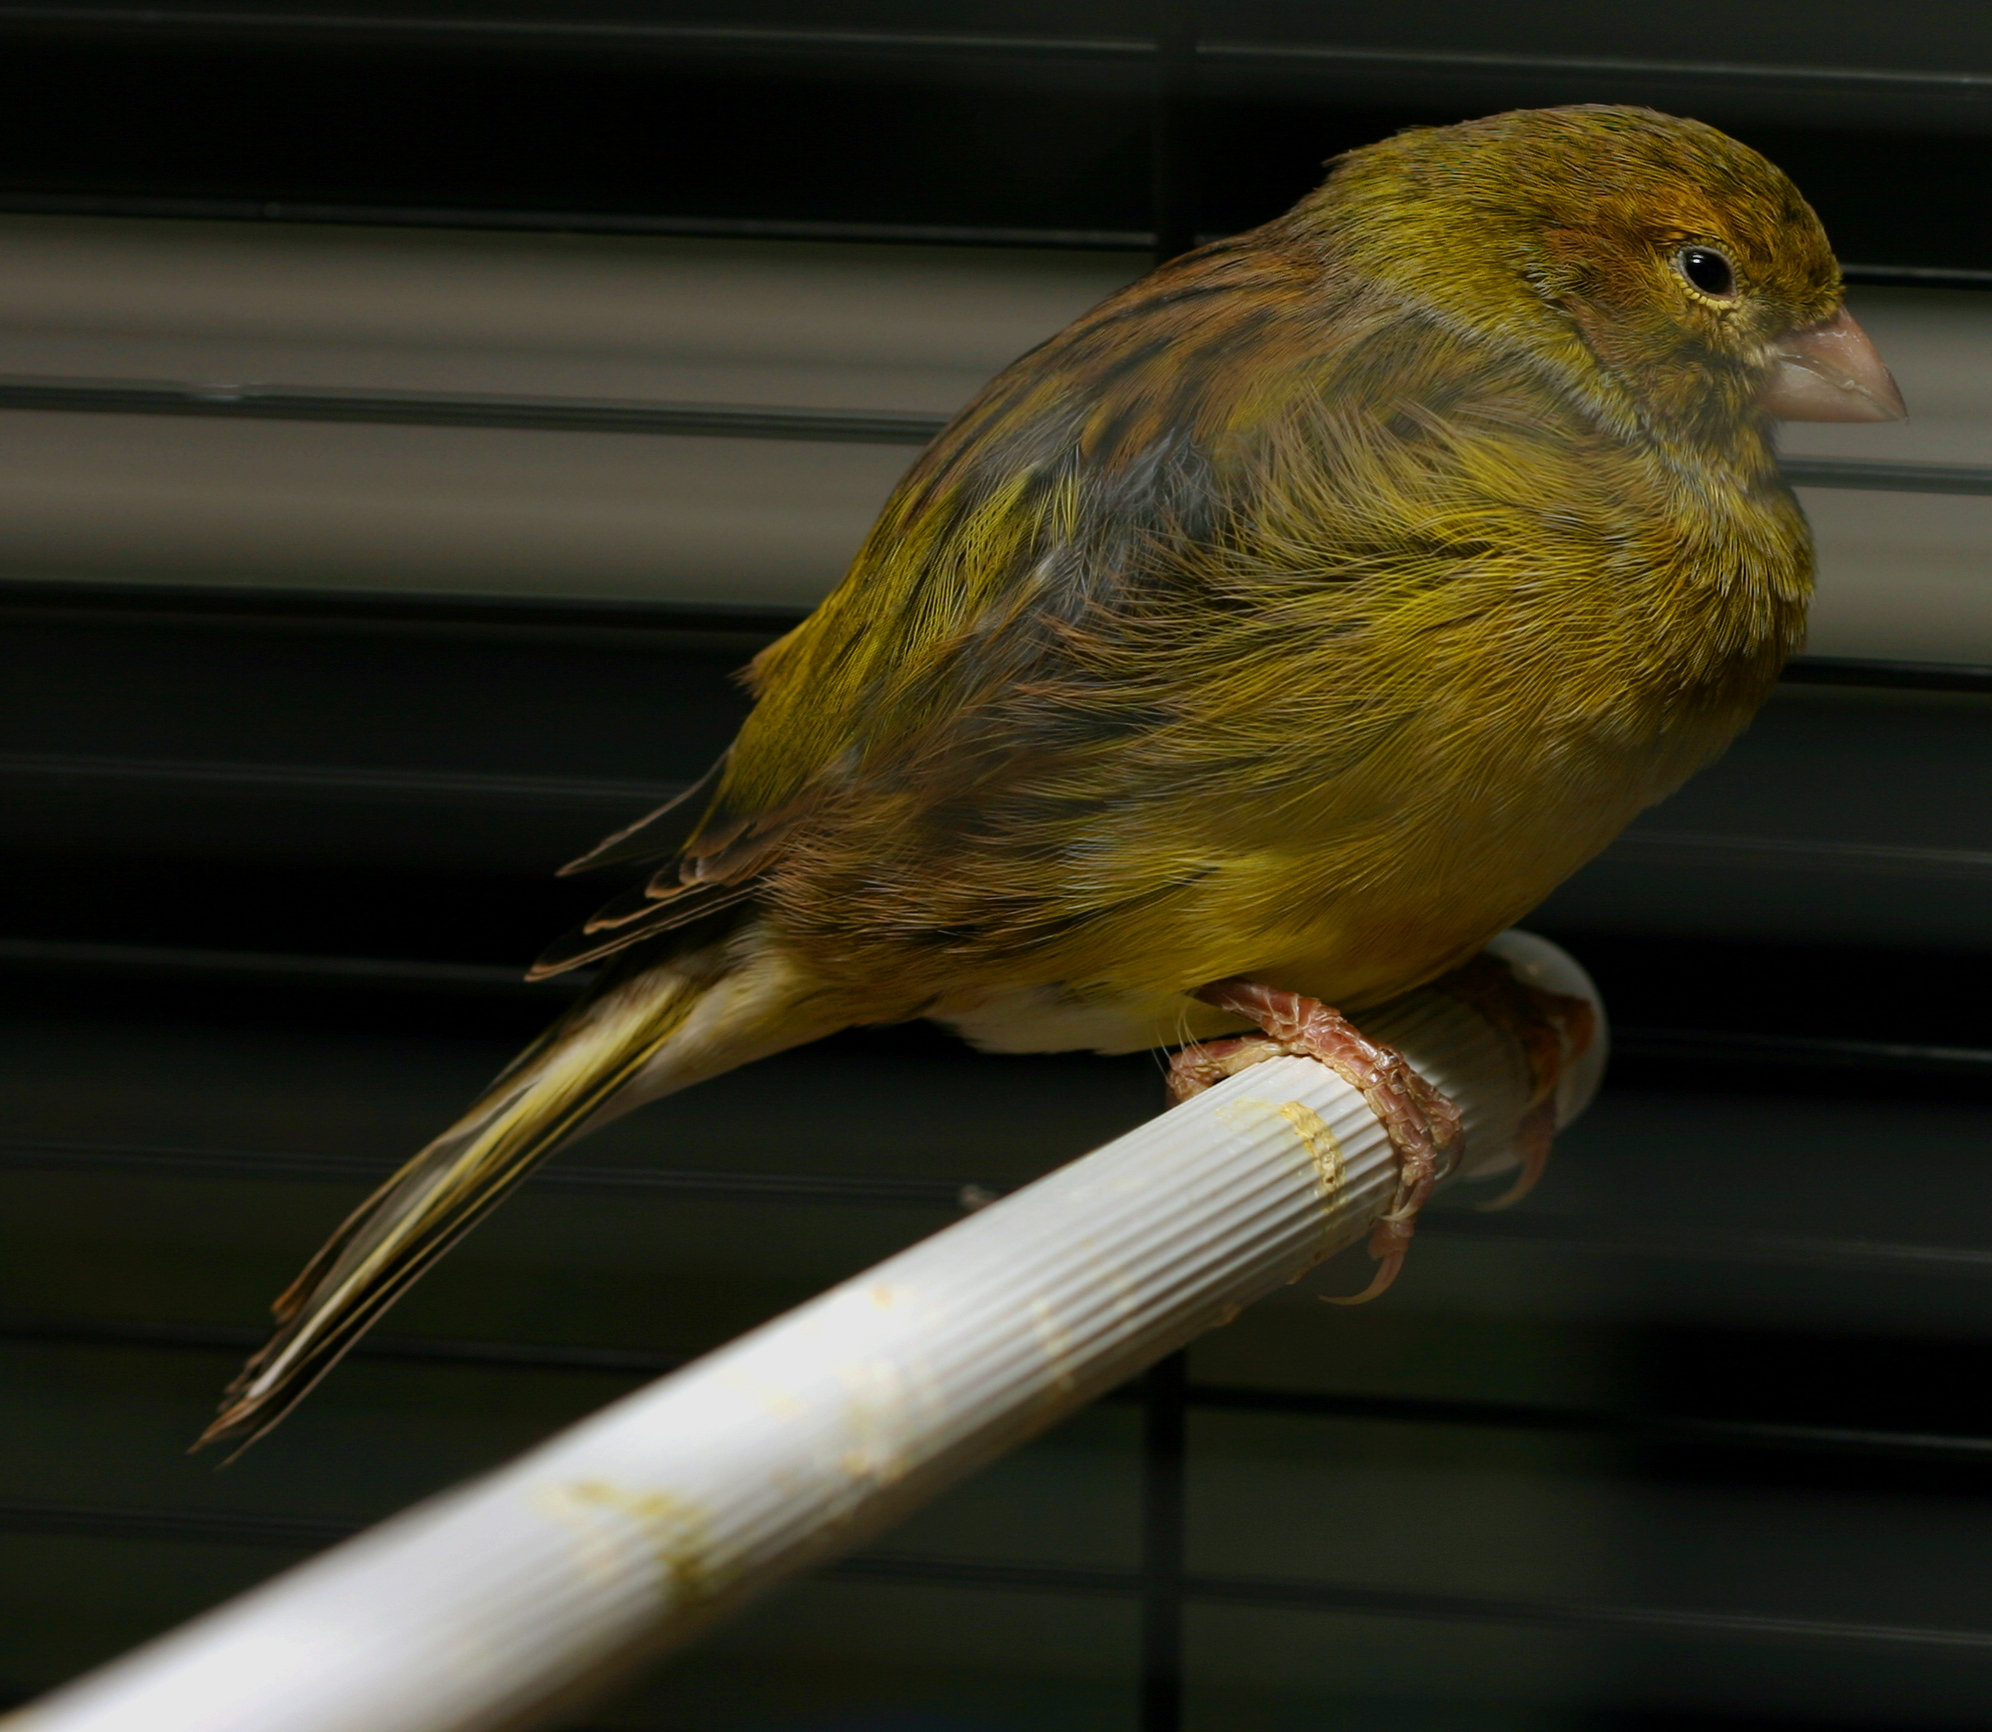 birds parrot and american singer canaries Find canaries for sale via pets4homes the #1 free pet classifieds site to buy, sell and rehome canaries and other birds in your local area.